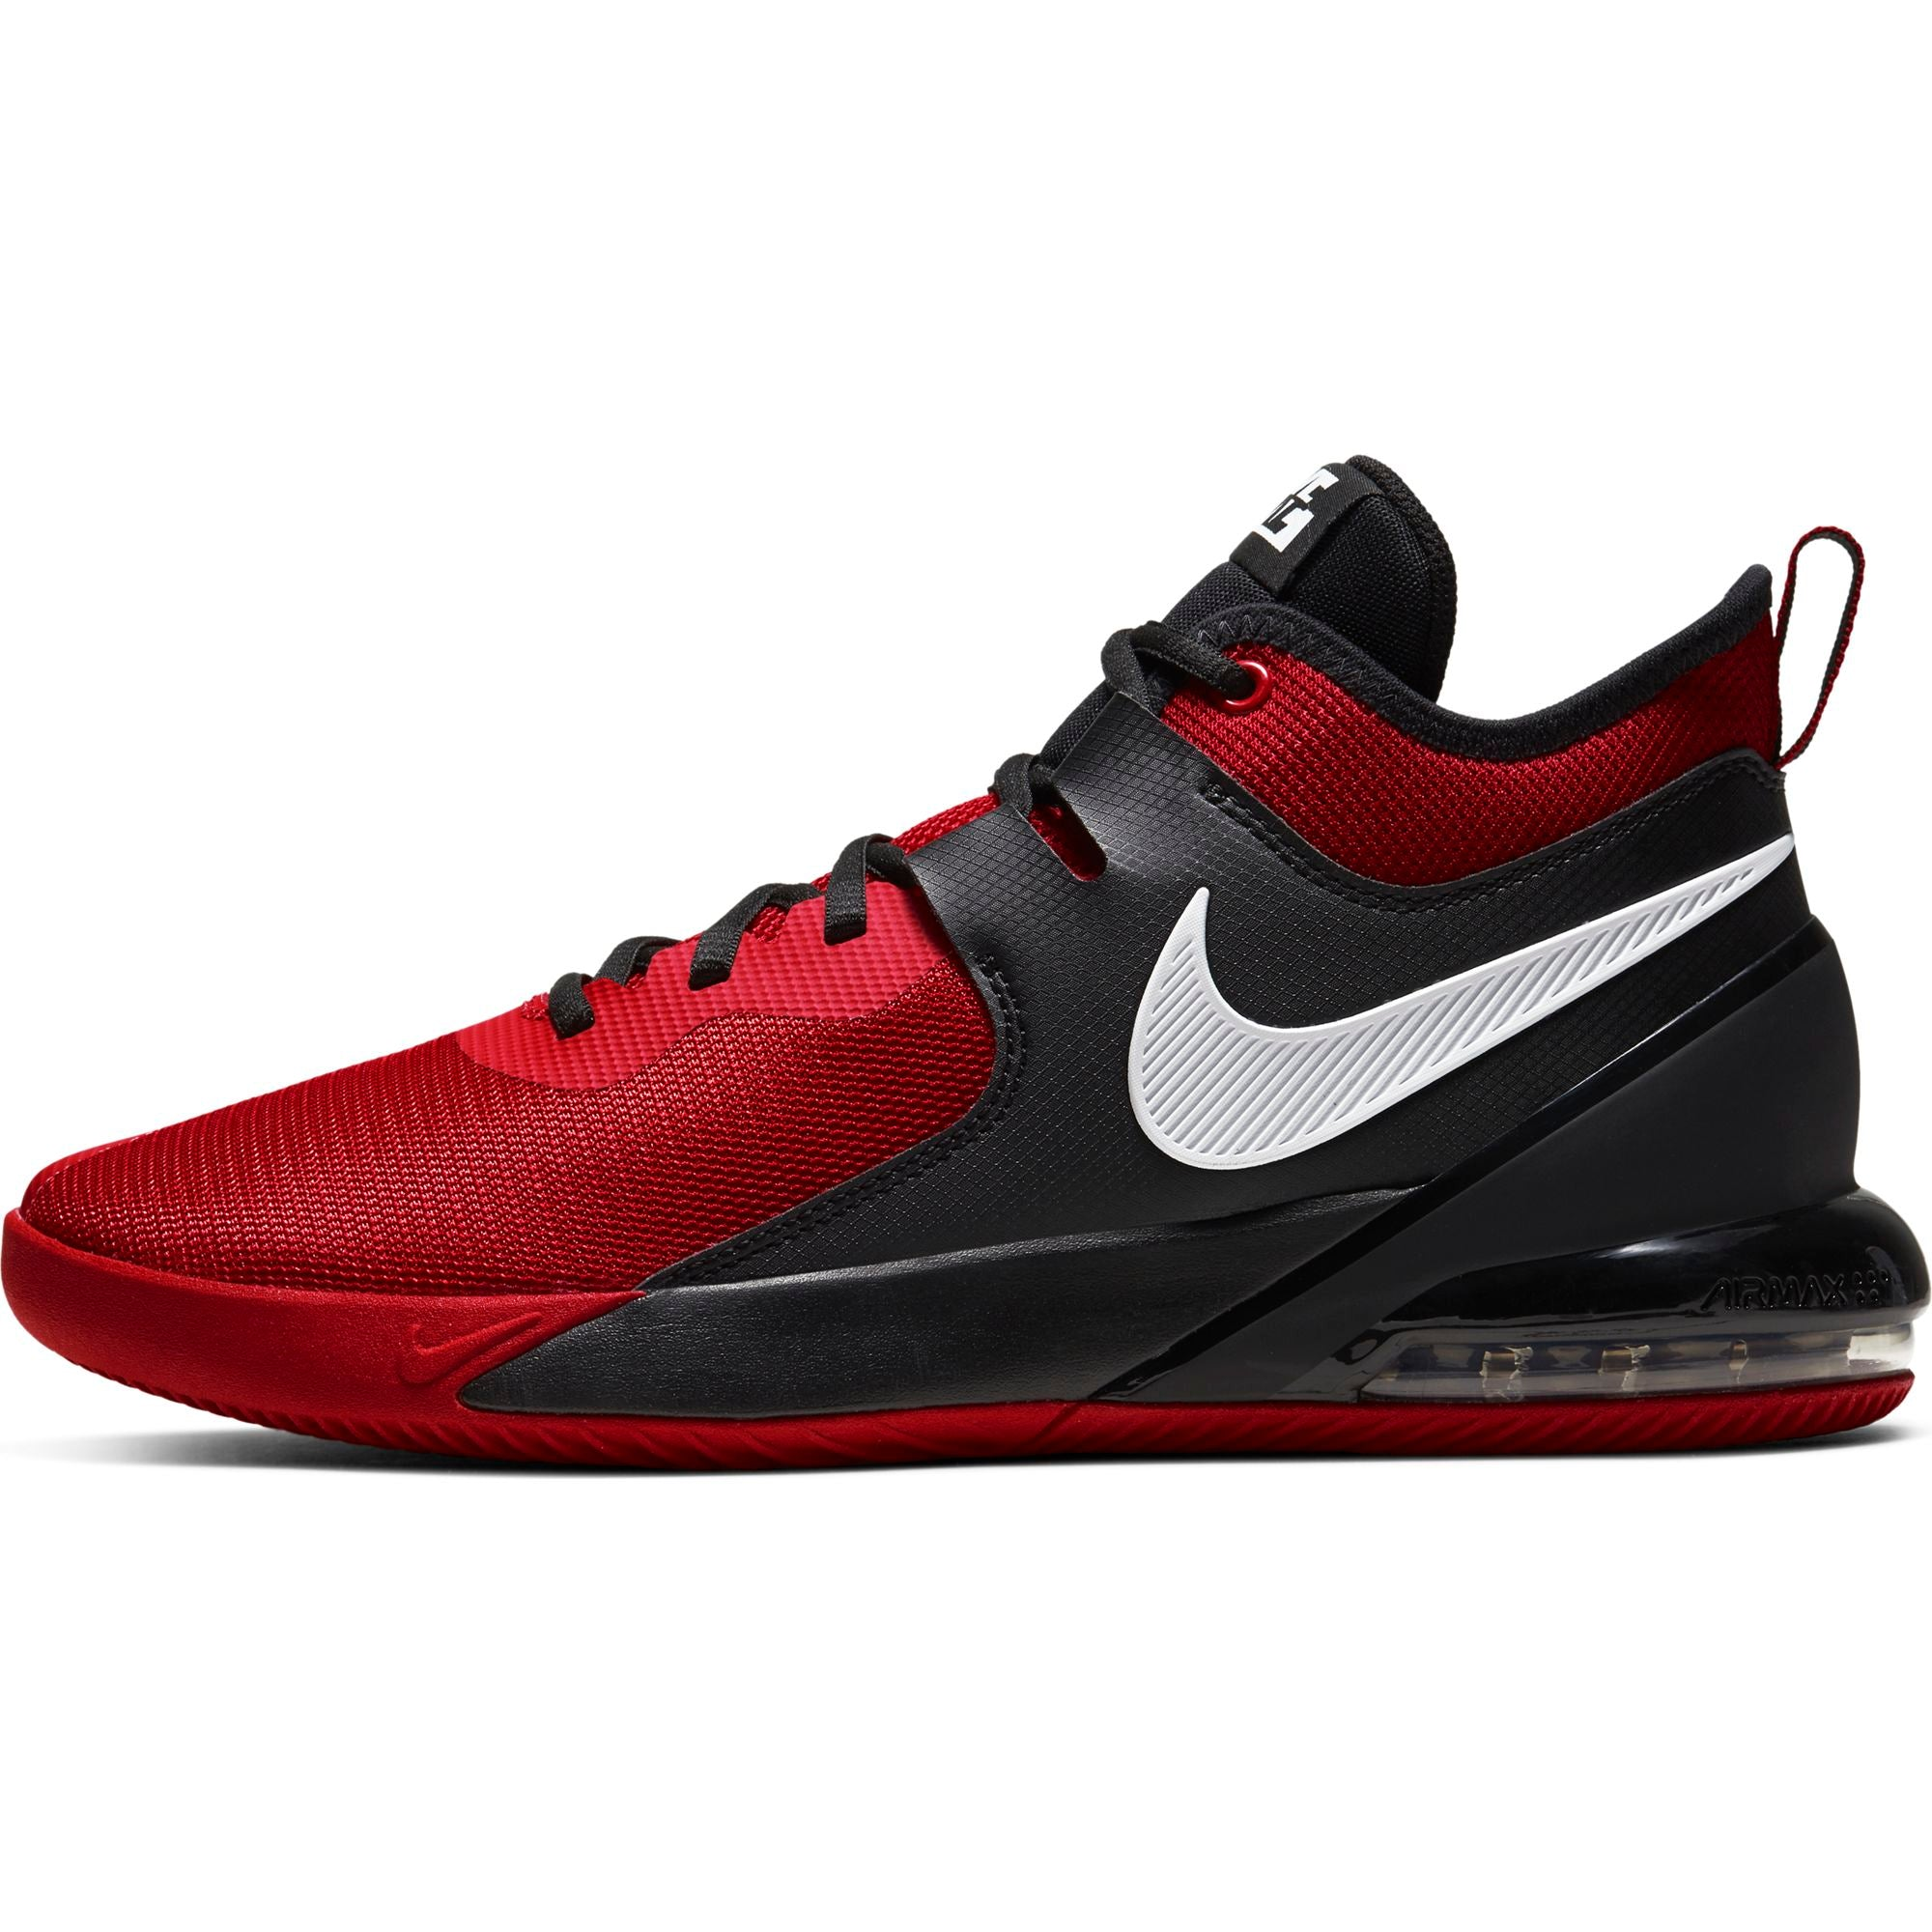 Nike Basketball Air Max Impact Basketball Boot/Shoe - NK-CI1396-600